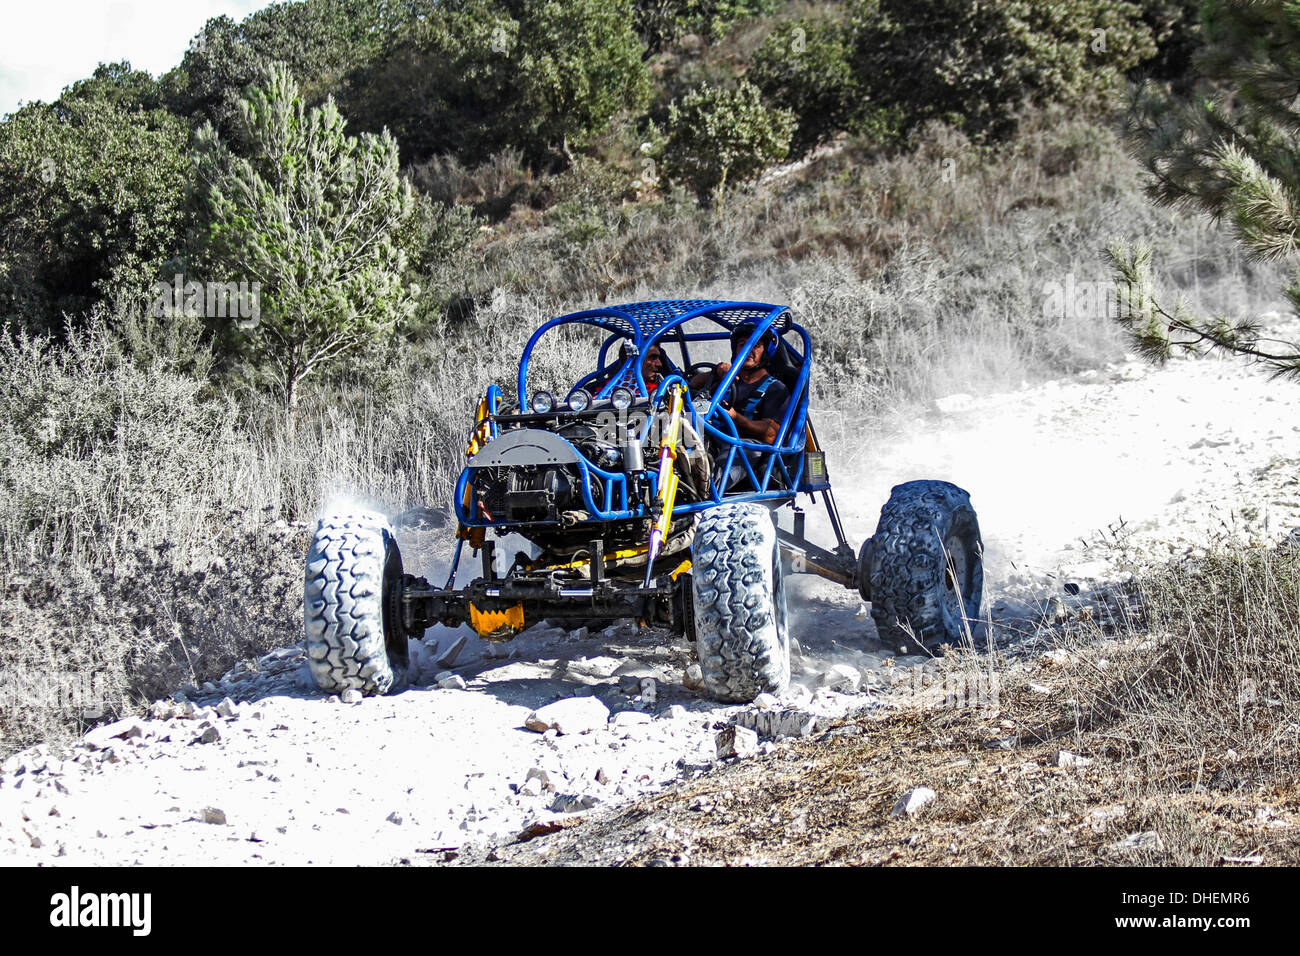 Cross country rally. A racing buggy event. Photographed in Israel - Stock Image